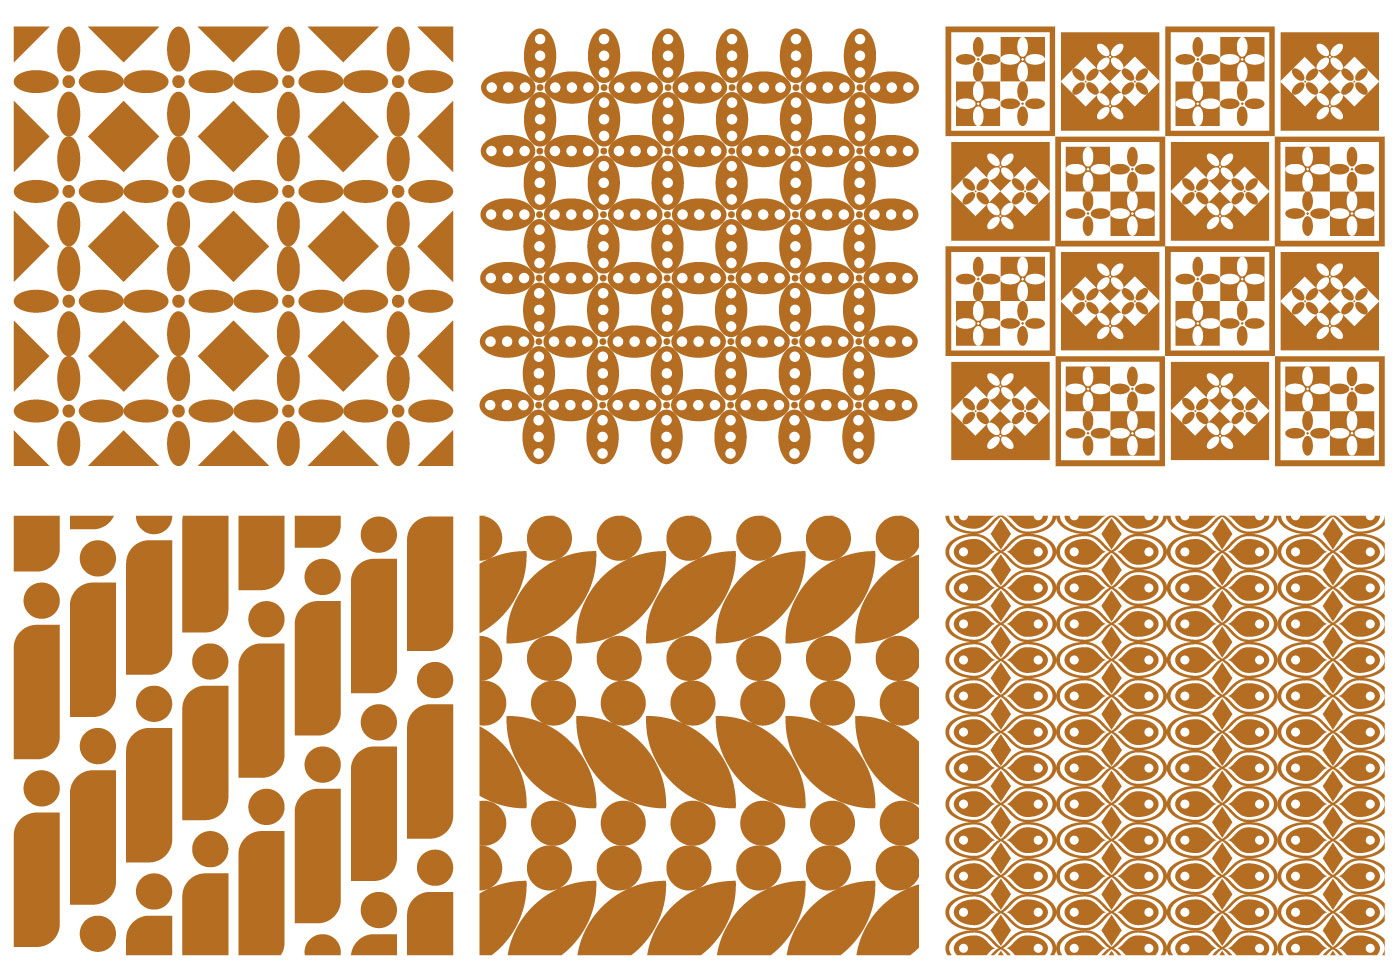 Batik Vector - Download Free Vector Art, Stock Graphics ...